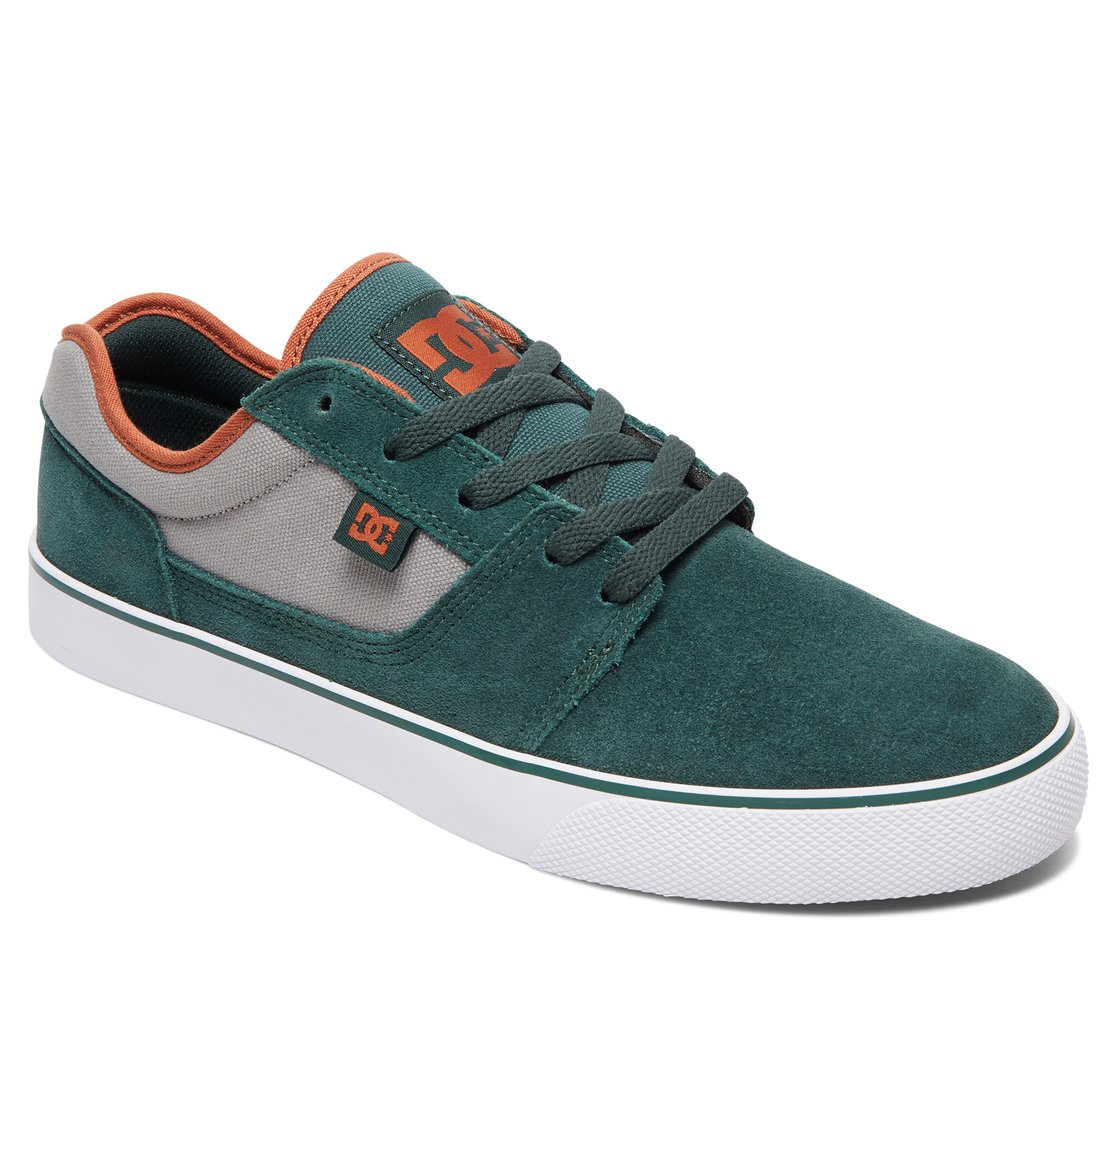 DC-Shoes-Tonik-Baskets-pour-Homme-302905 miniature 30